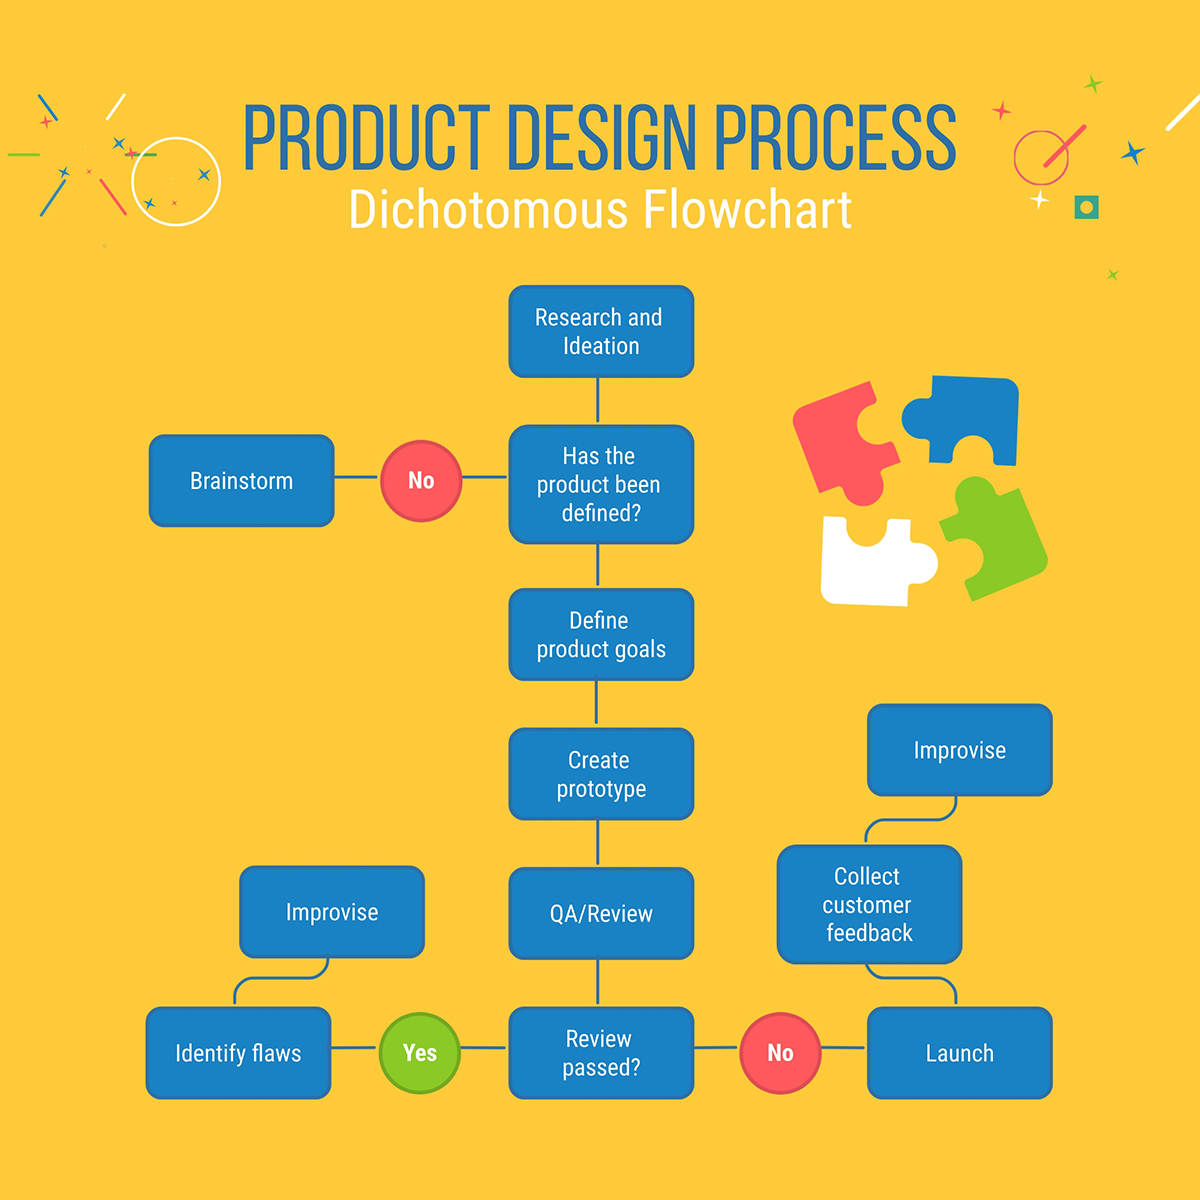 A product design process flowchart template available to customize in Visme.